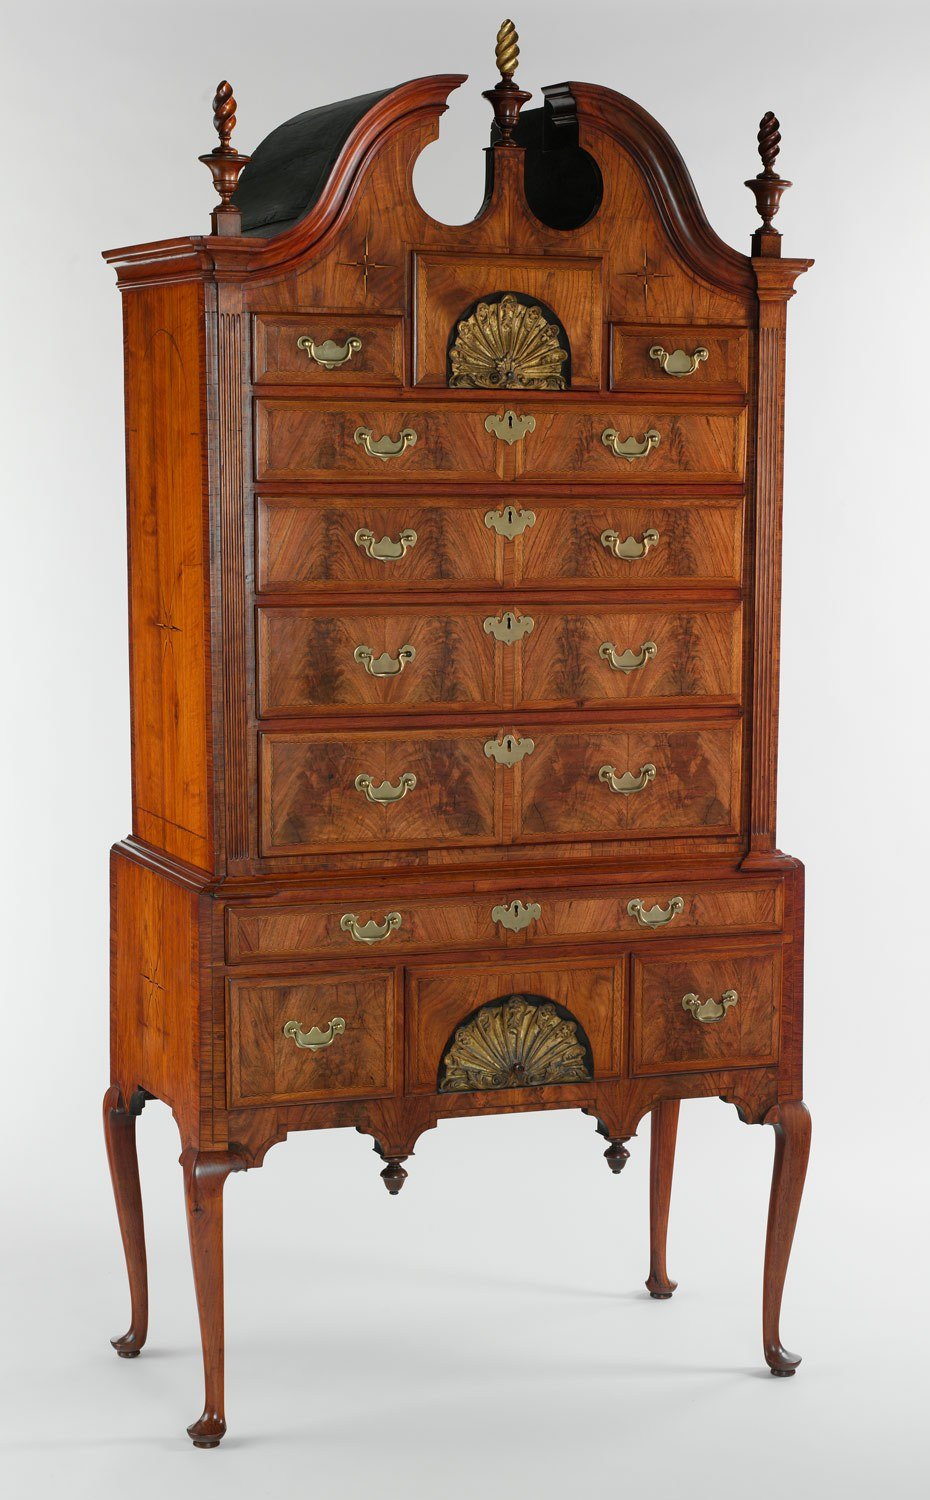 Best Chest Of Drawers Work Of Art Heilbrunn Timeline Of Art With Pictures